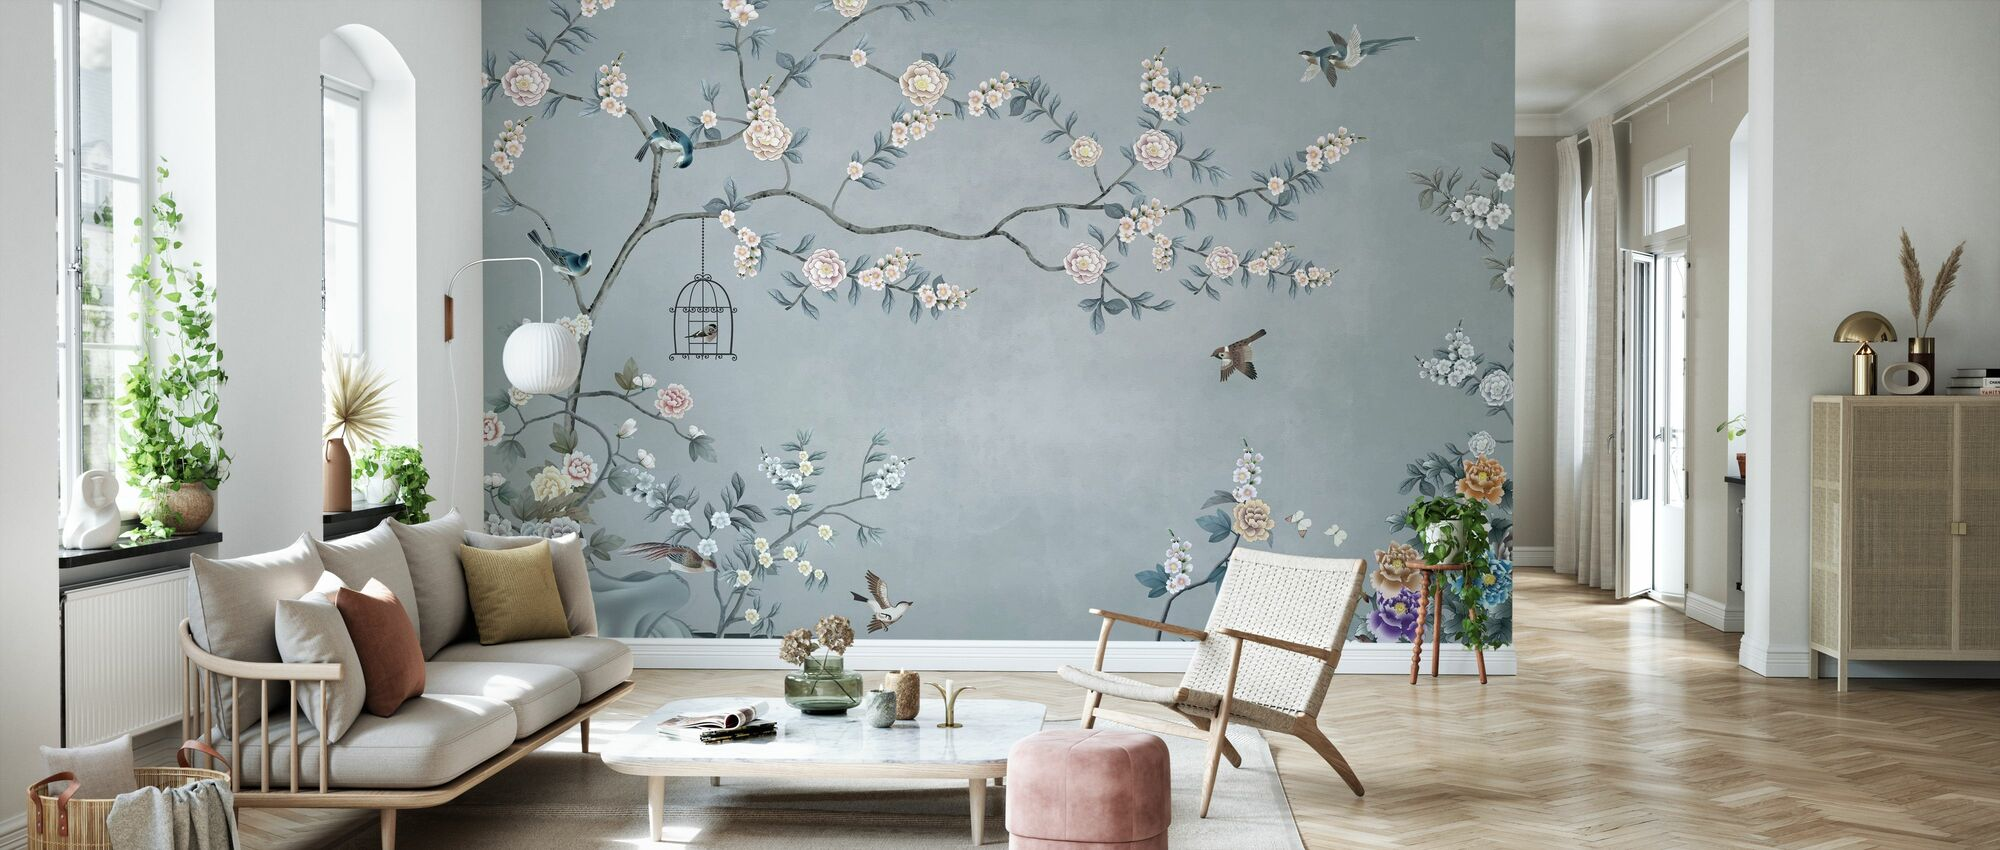 Birds Eden - Wallpaper - Living Room